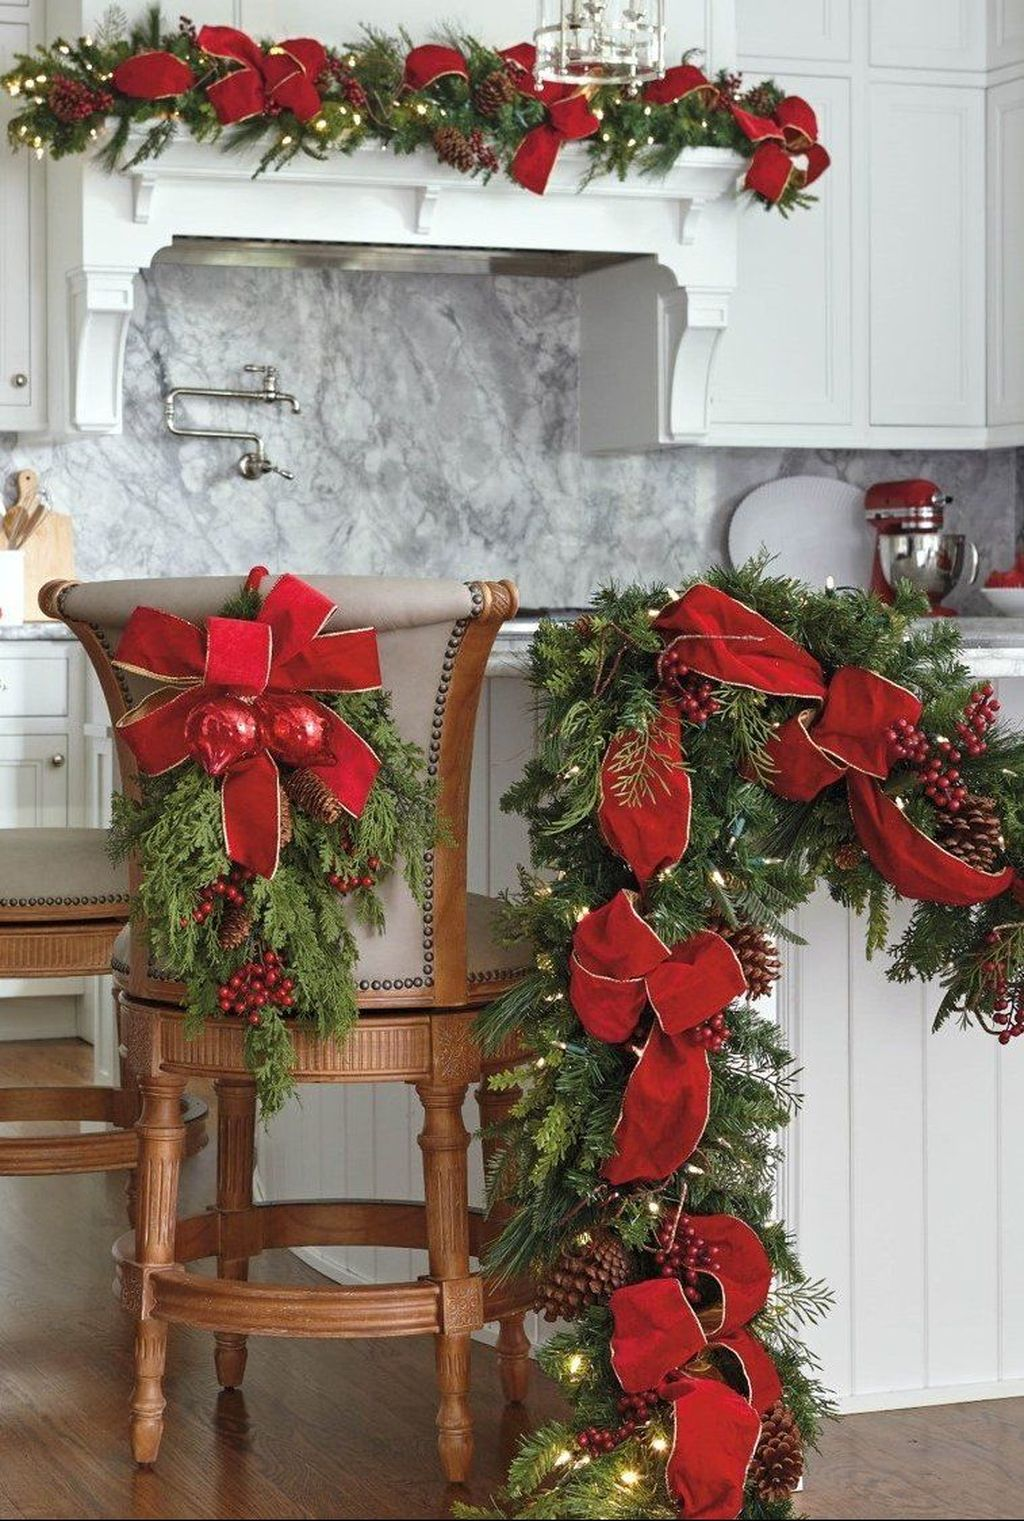 Popular Christmas Decor Ideas For Kitchen Island 08